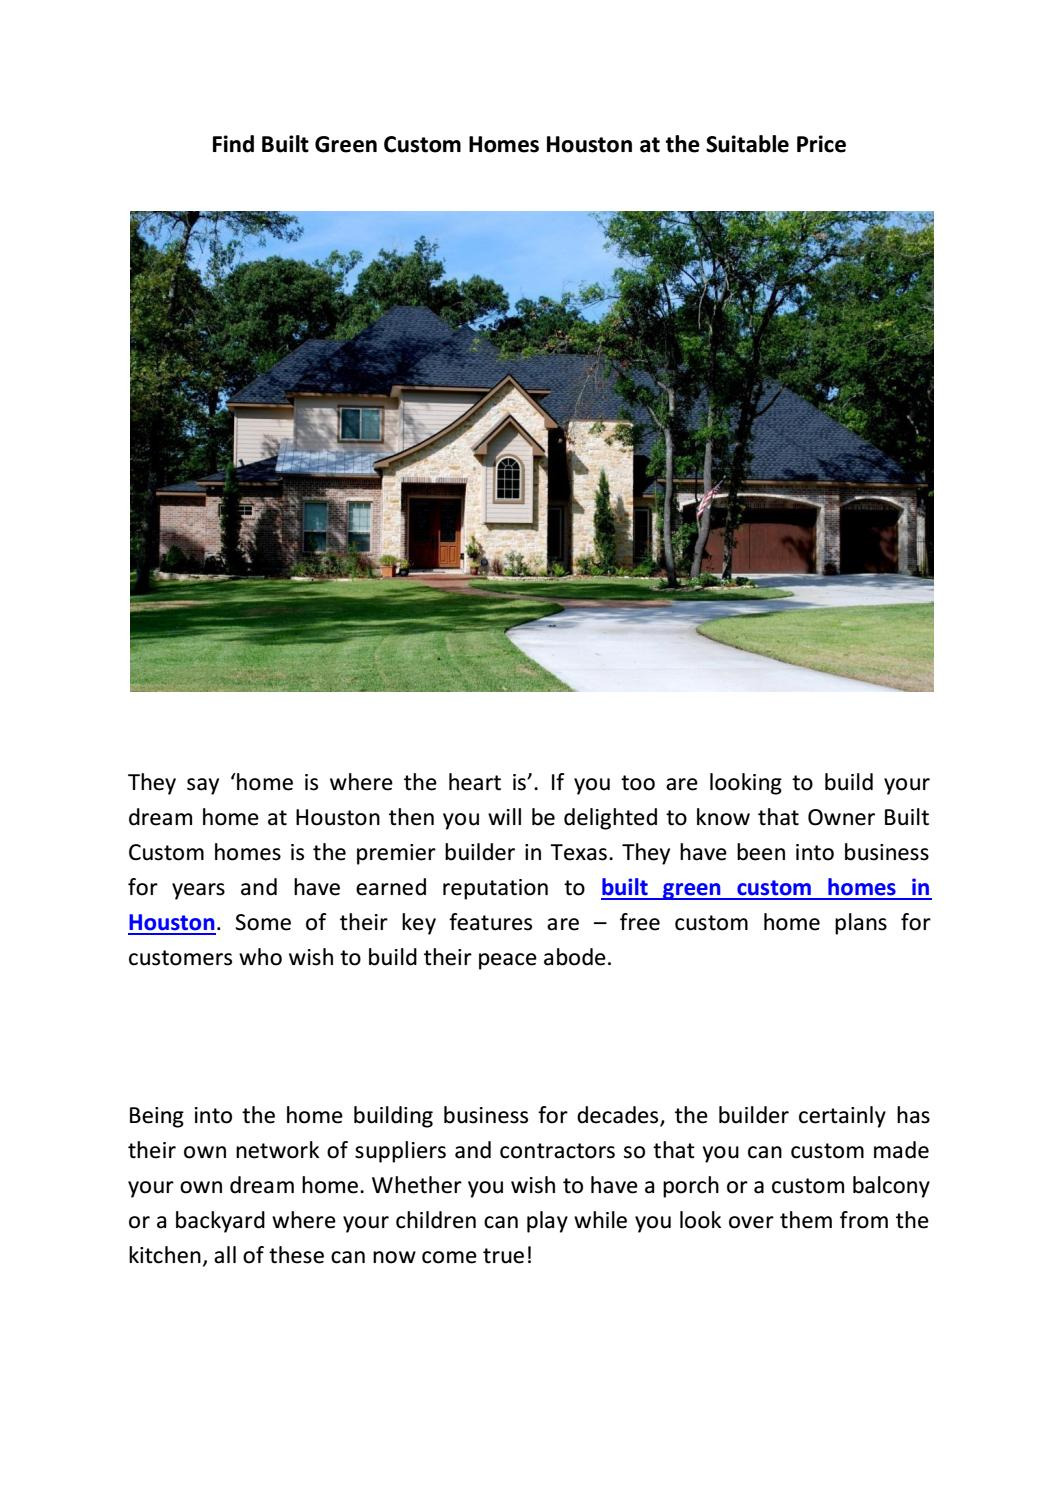 Cost to Build On Your Own Lot Fresh Find Built Green Custom Homes Houston at the Suitable Price